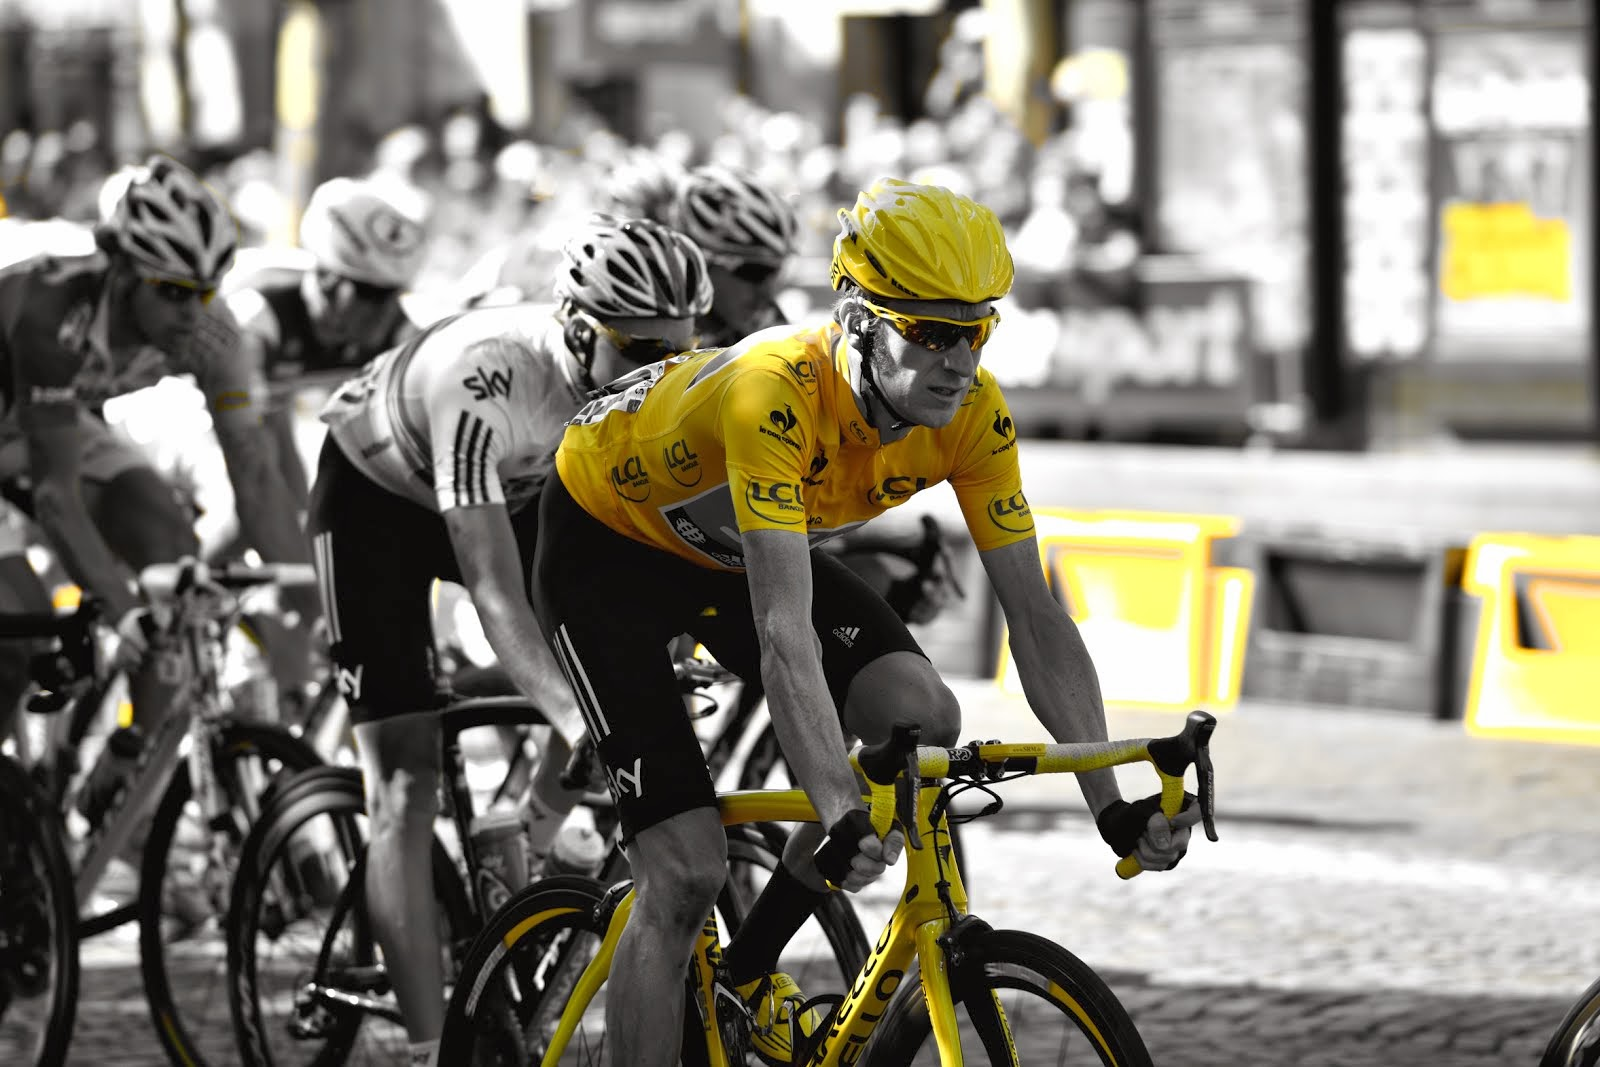 Bradley Wiggins on The Champs Elysees 2012